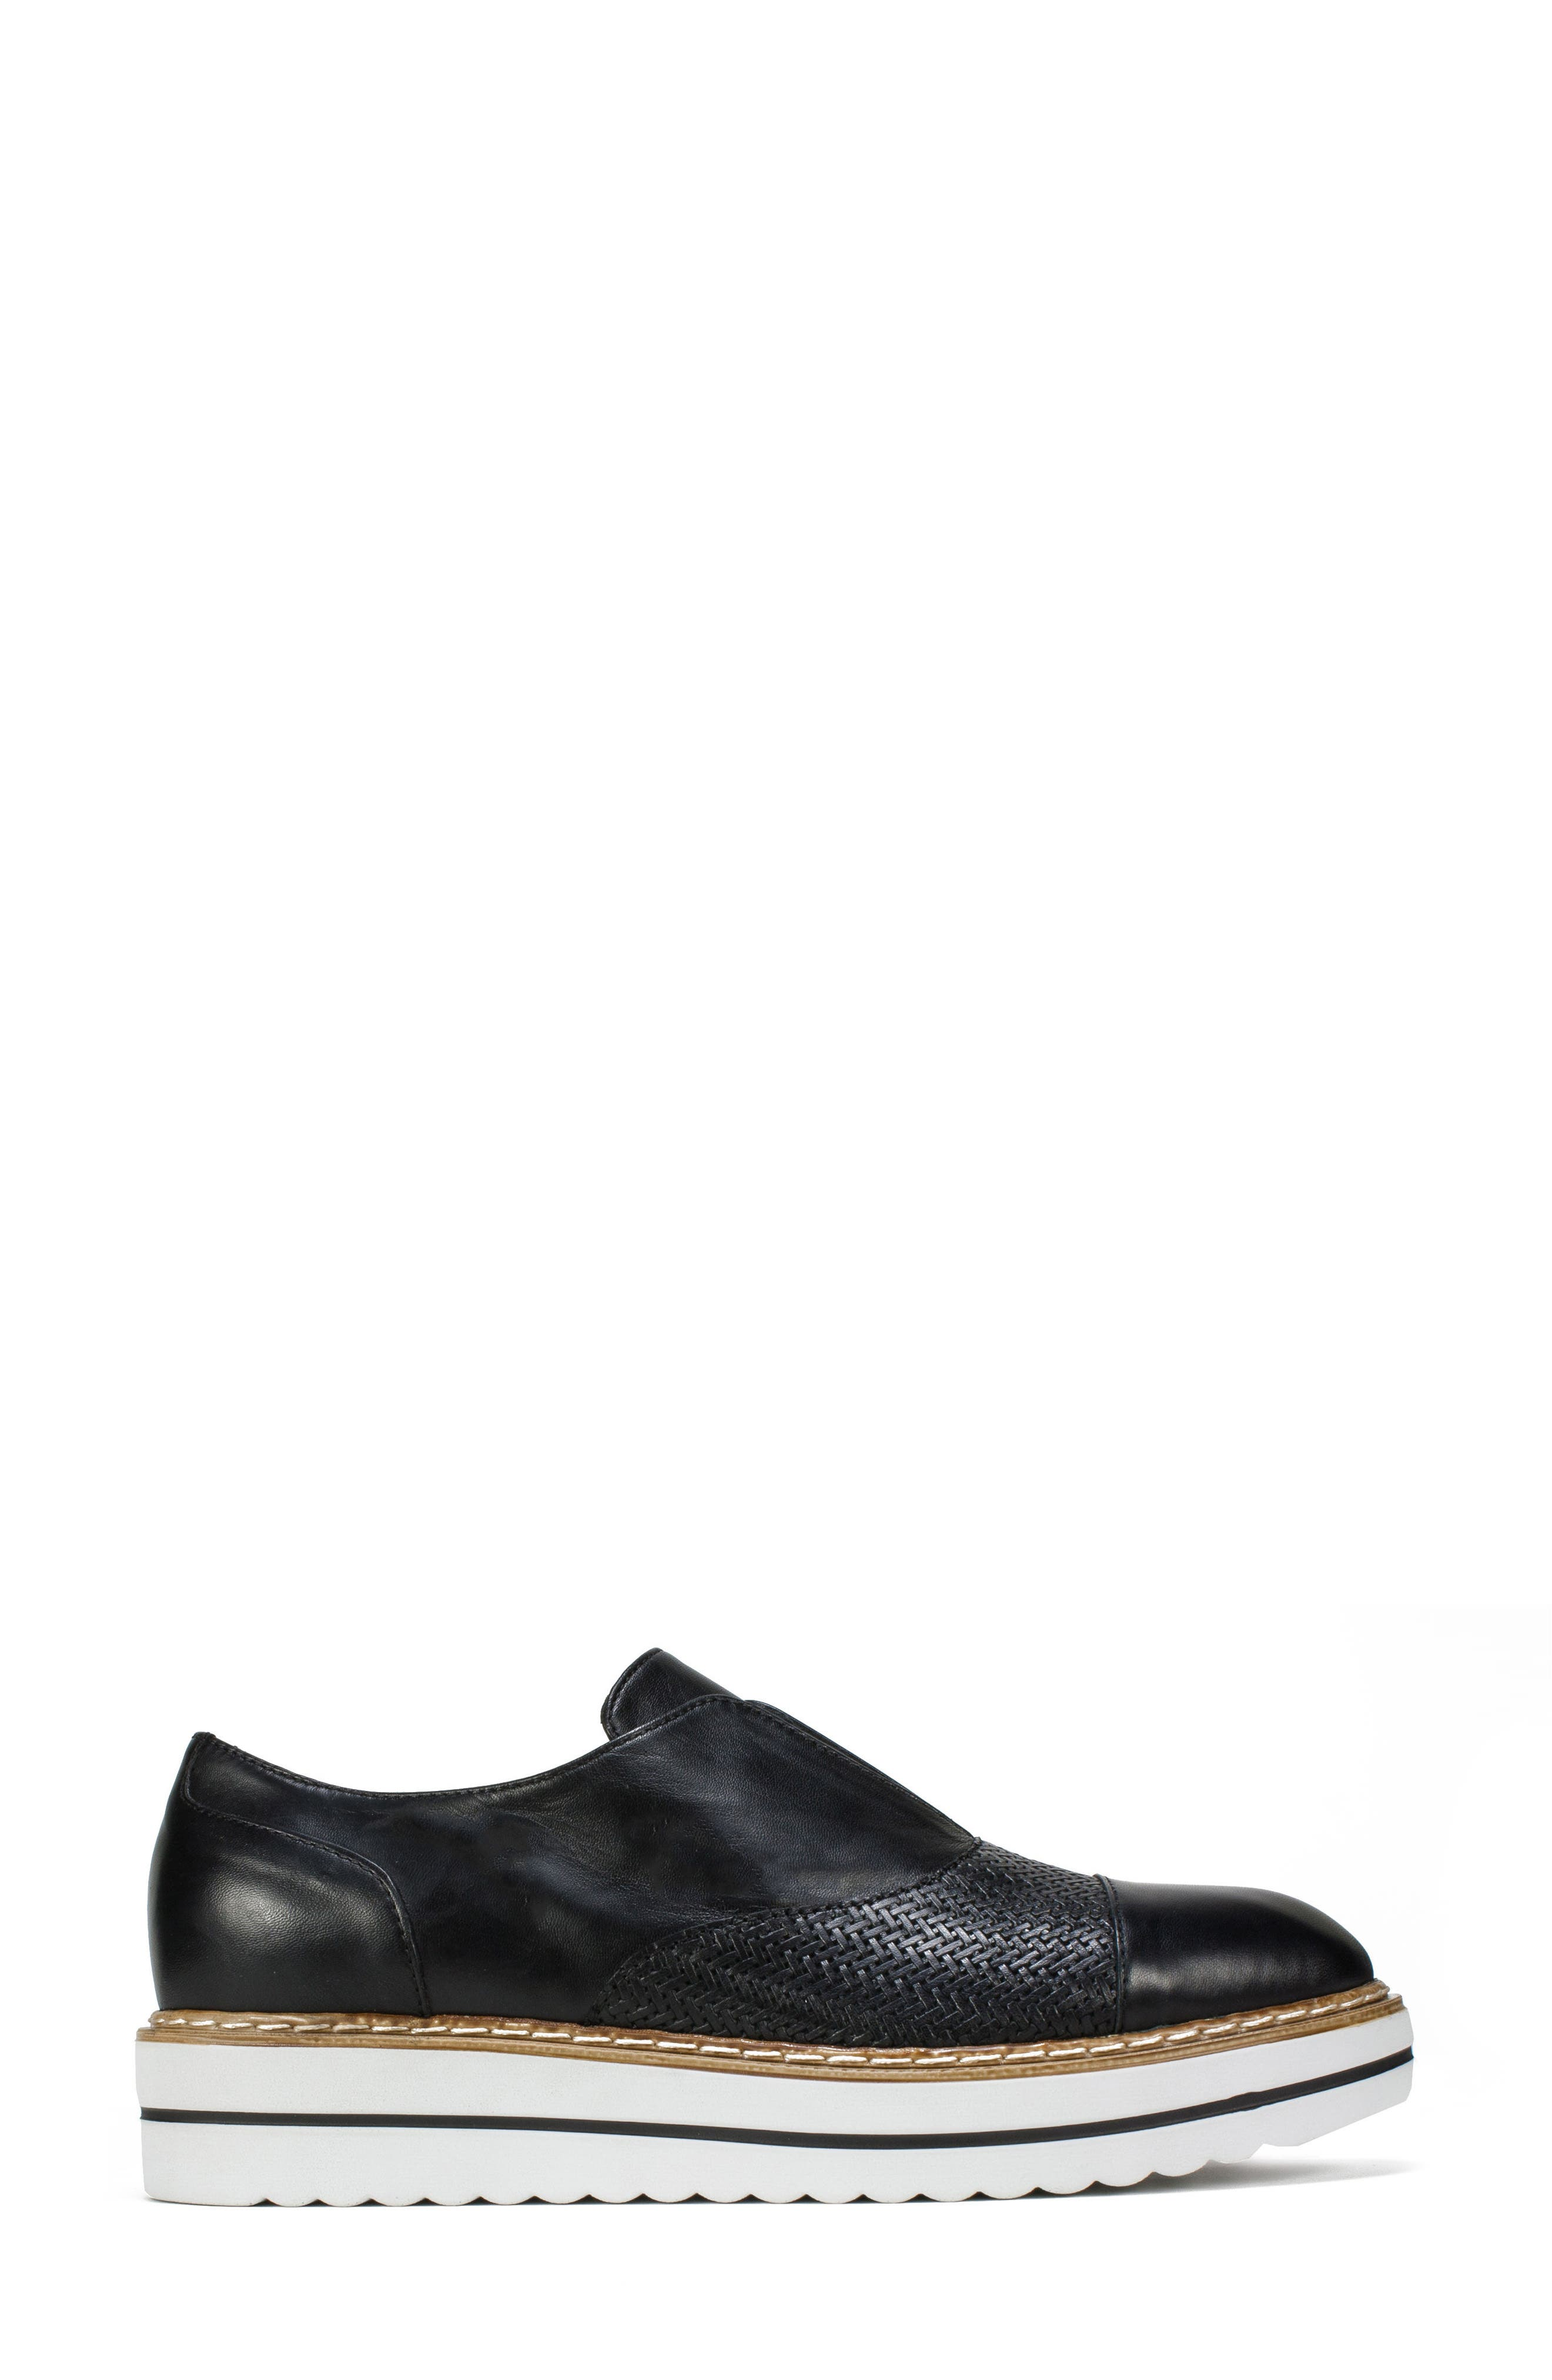 Bliss Loafer,                             Alternate thumbnail 3, color,                             Black Leather